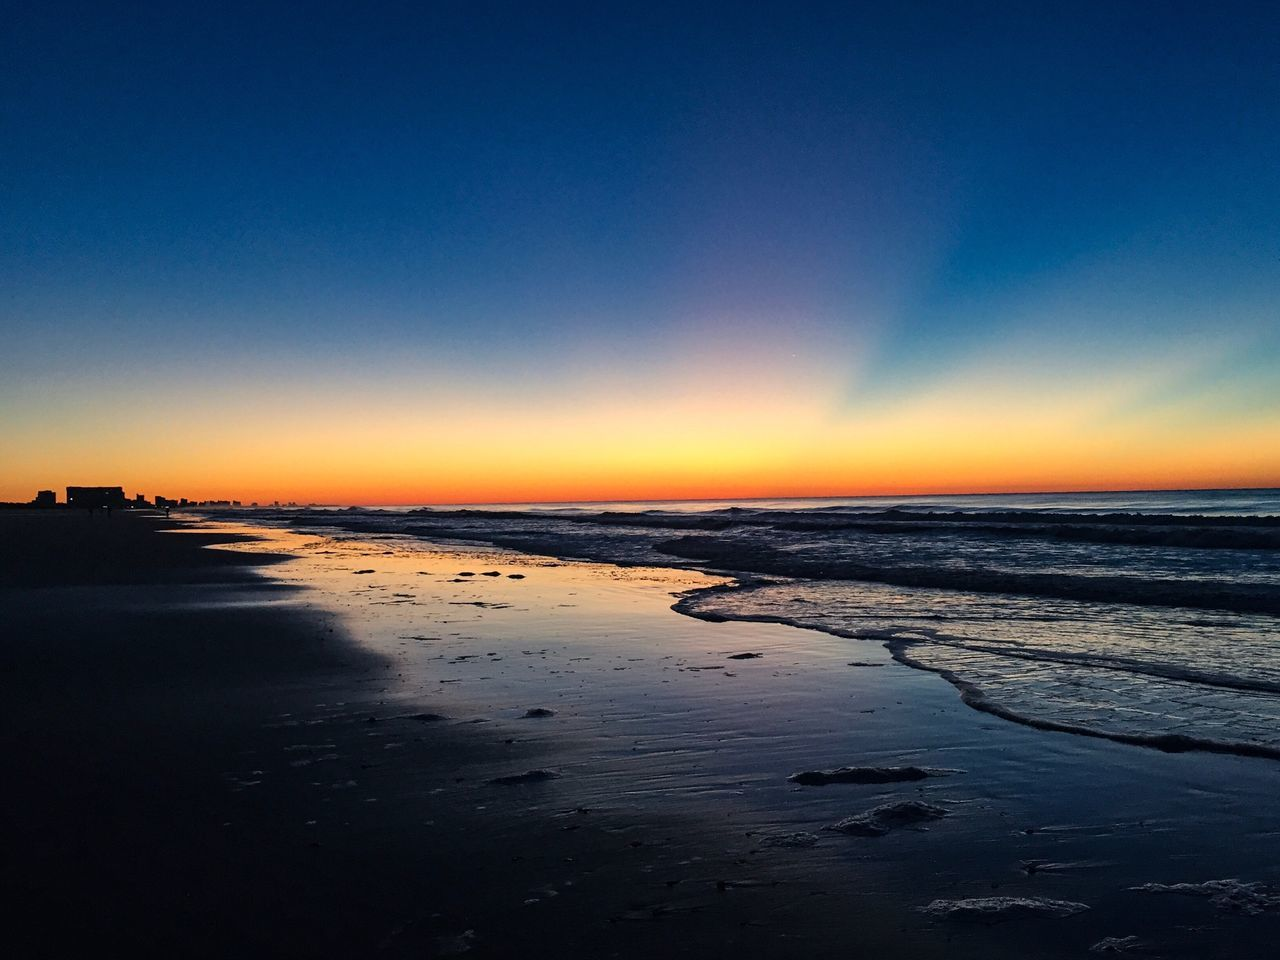 Sea Beauty In Nature Water Nature Tranquil Scene Scenics Sunset Reflection Beach Tranquility Horizon Over Water Sky Idyllic Outdoors No People Sand Day Sunrise Ocean